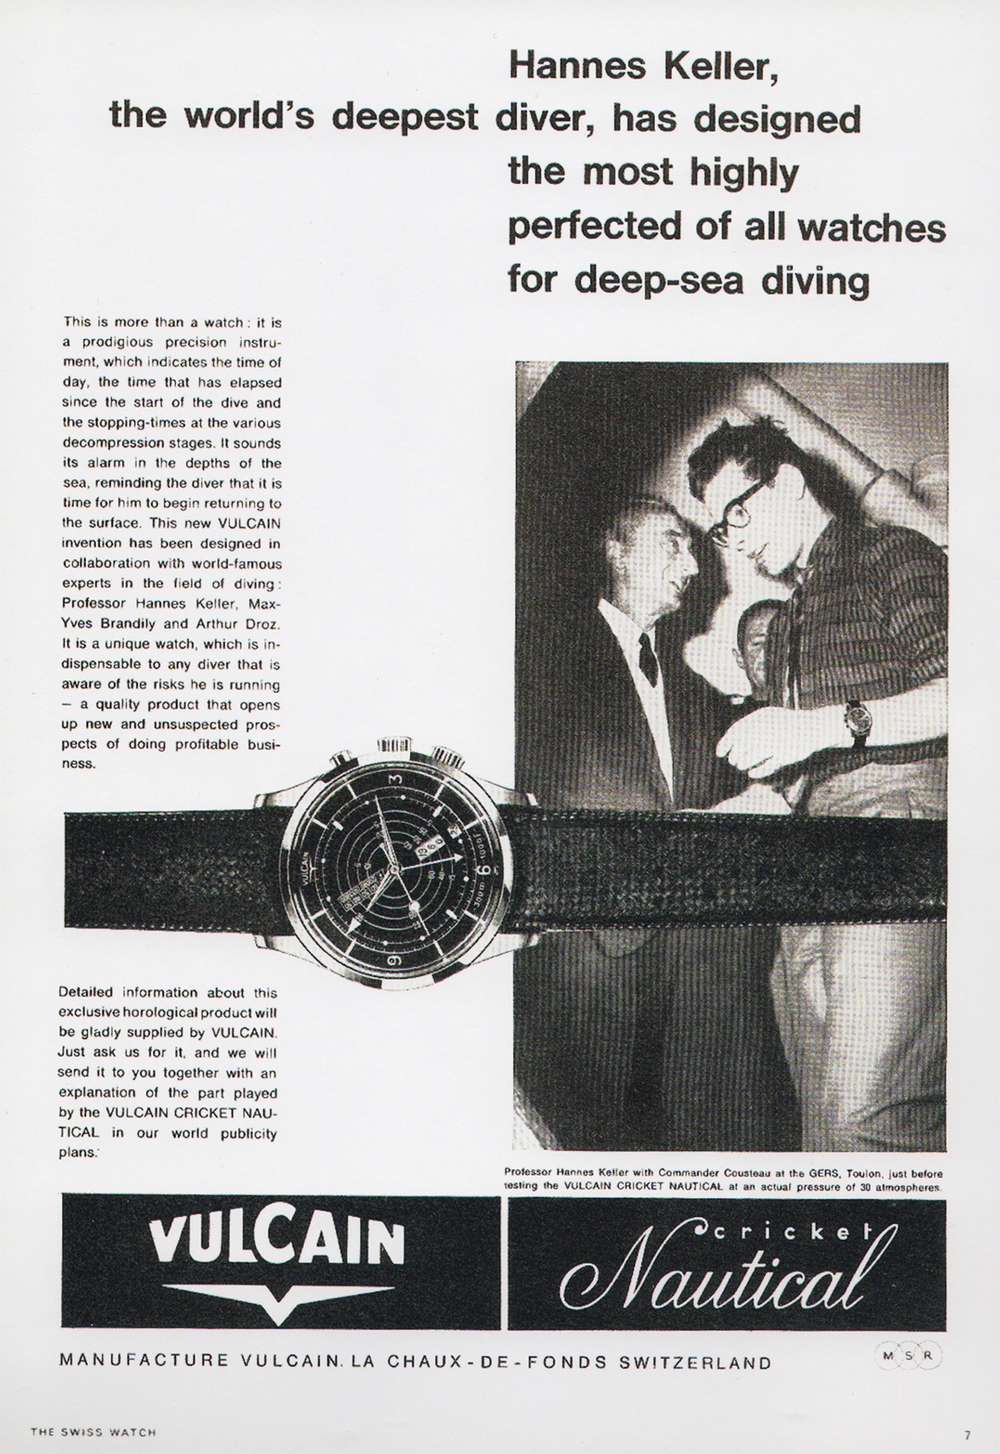 Nautical launch ad from 1961